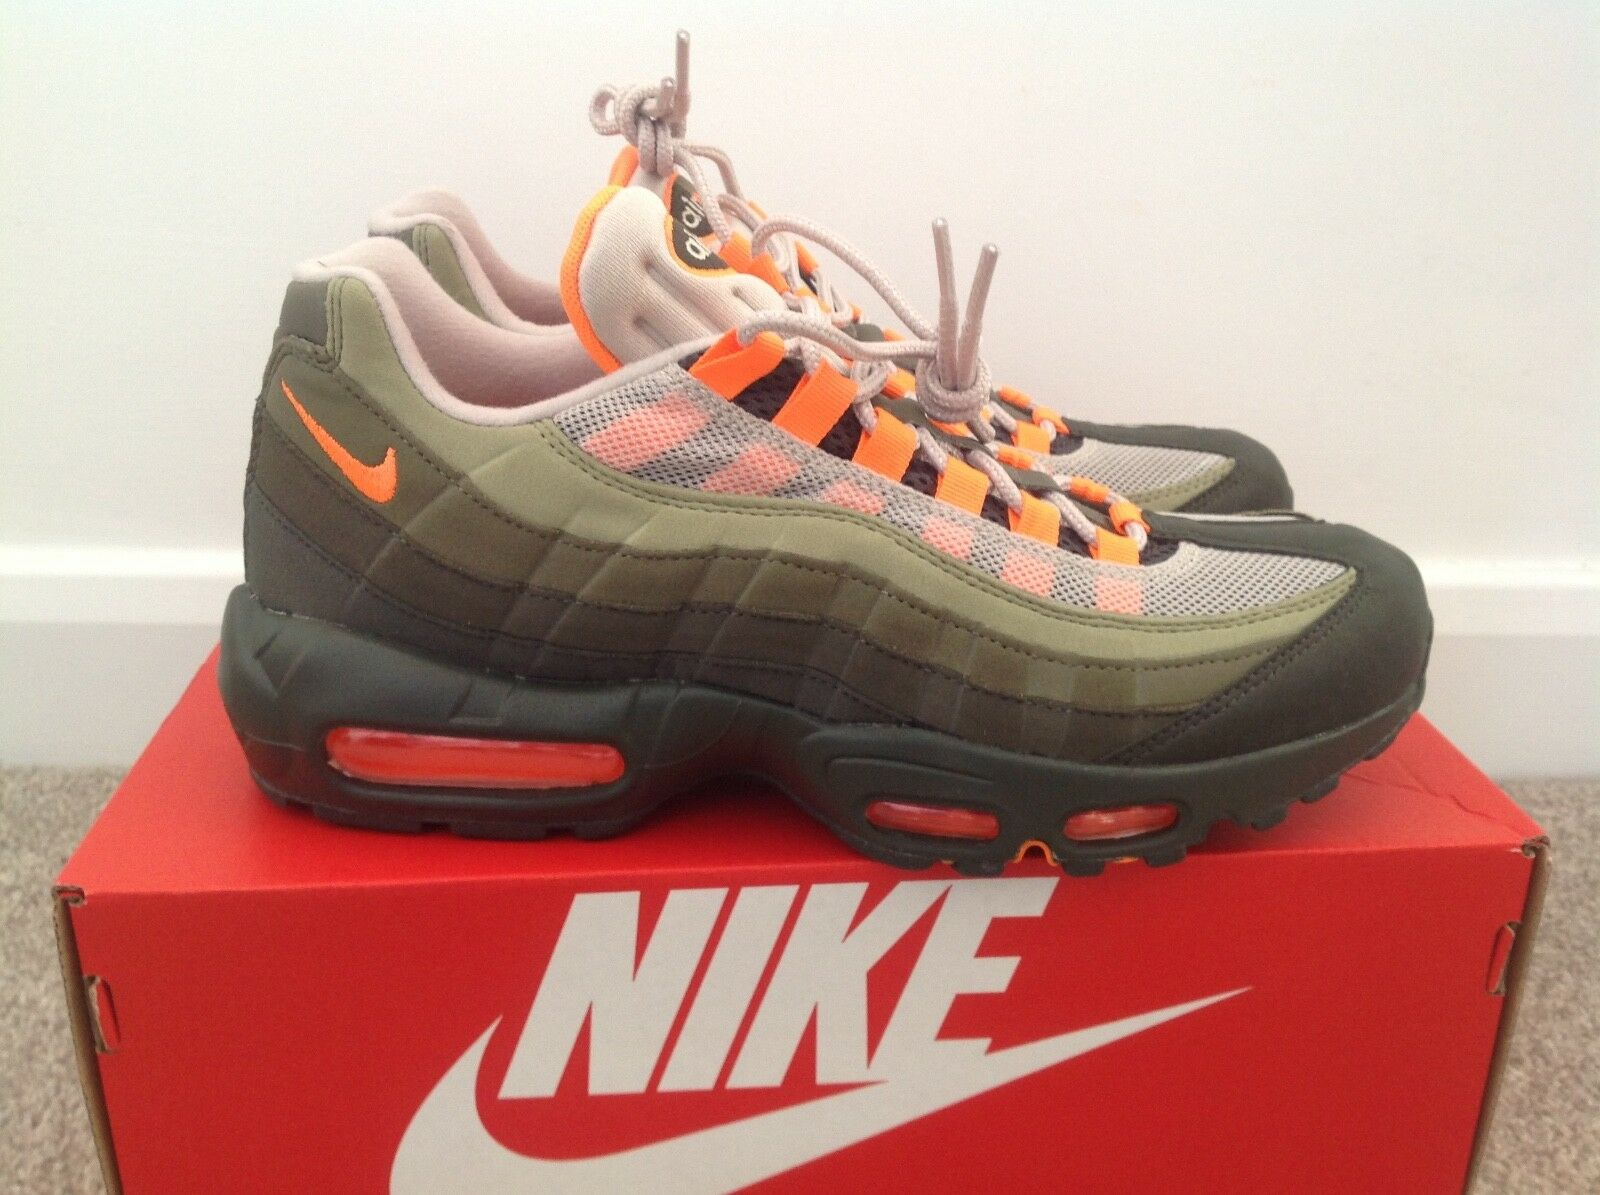 newest collection 2fb6a 6334a Nike Air Max Max Max 95 Og Olive total Orange US 8.5 EntièreHommes t neuf  dans sa boîte 100% Authentique 1a8319